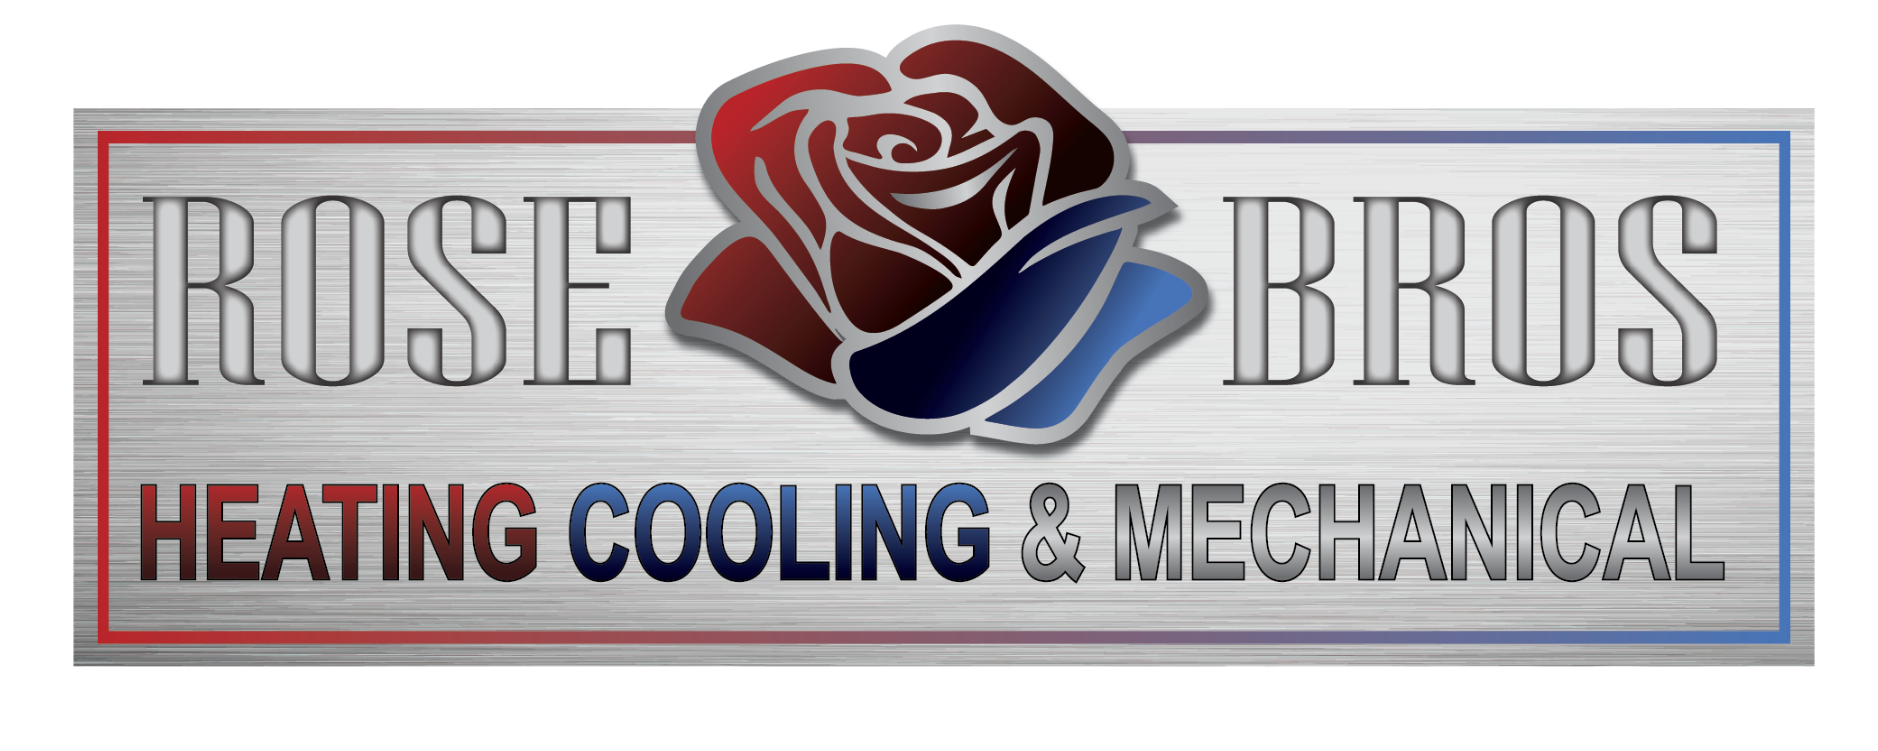 Rose Bros Heating, Cooling & Mechanical, Inc.